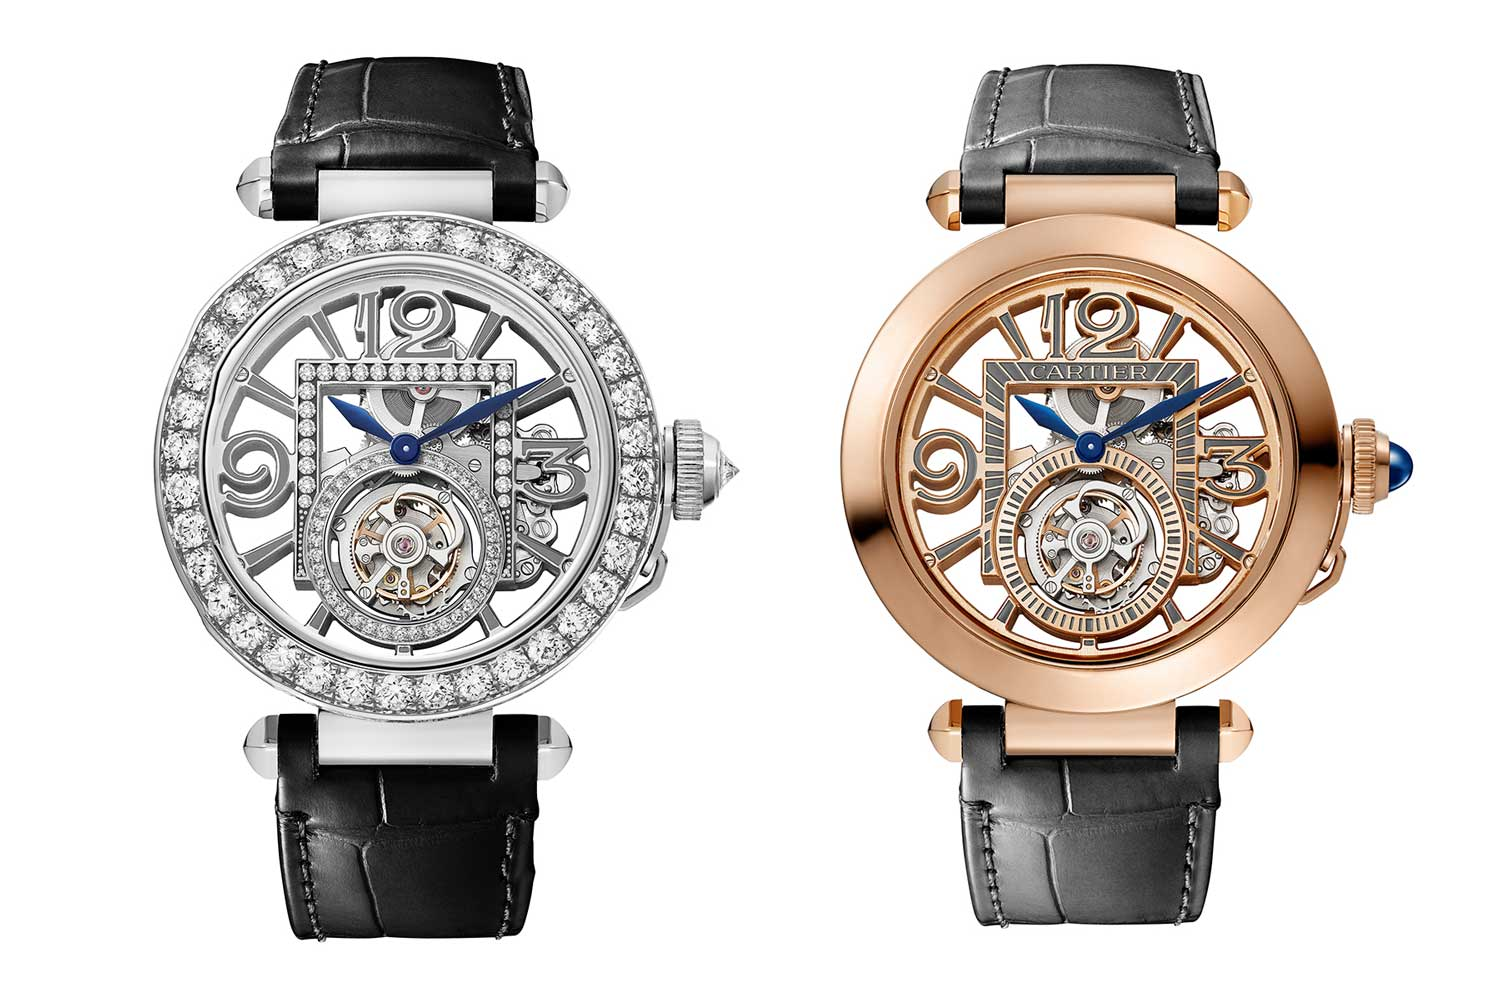 The Pasha de Cartier Skeleton Tourbillon in diamond-set white gold case or pink gold